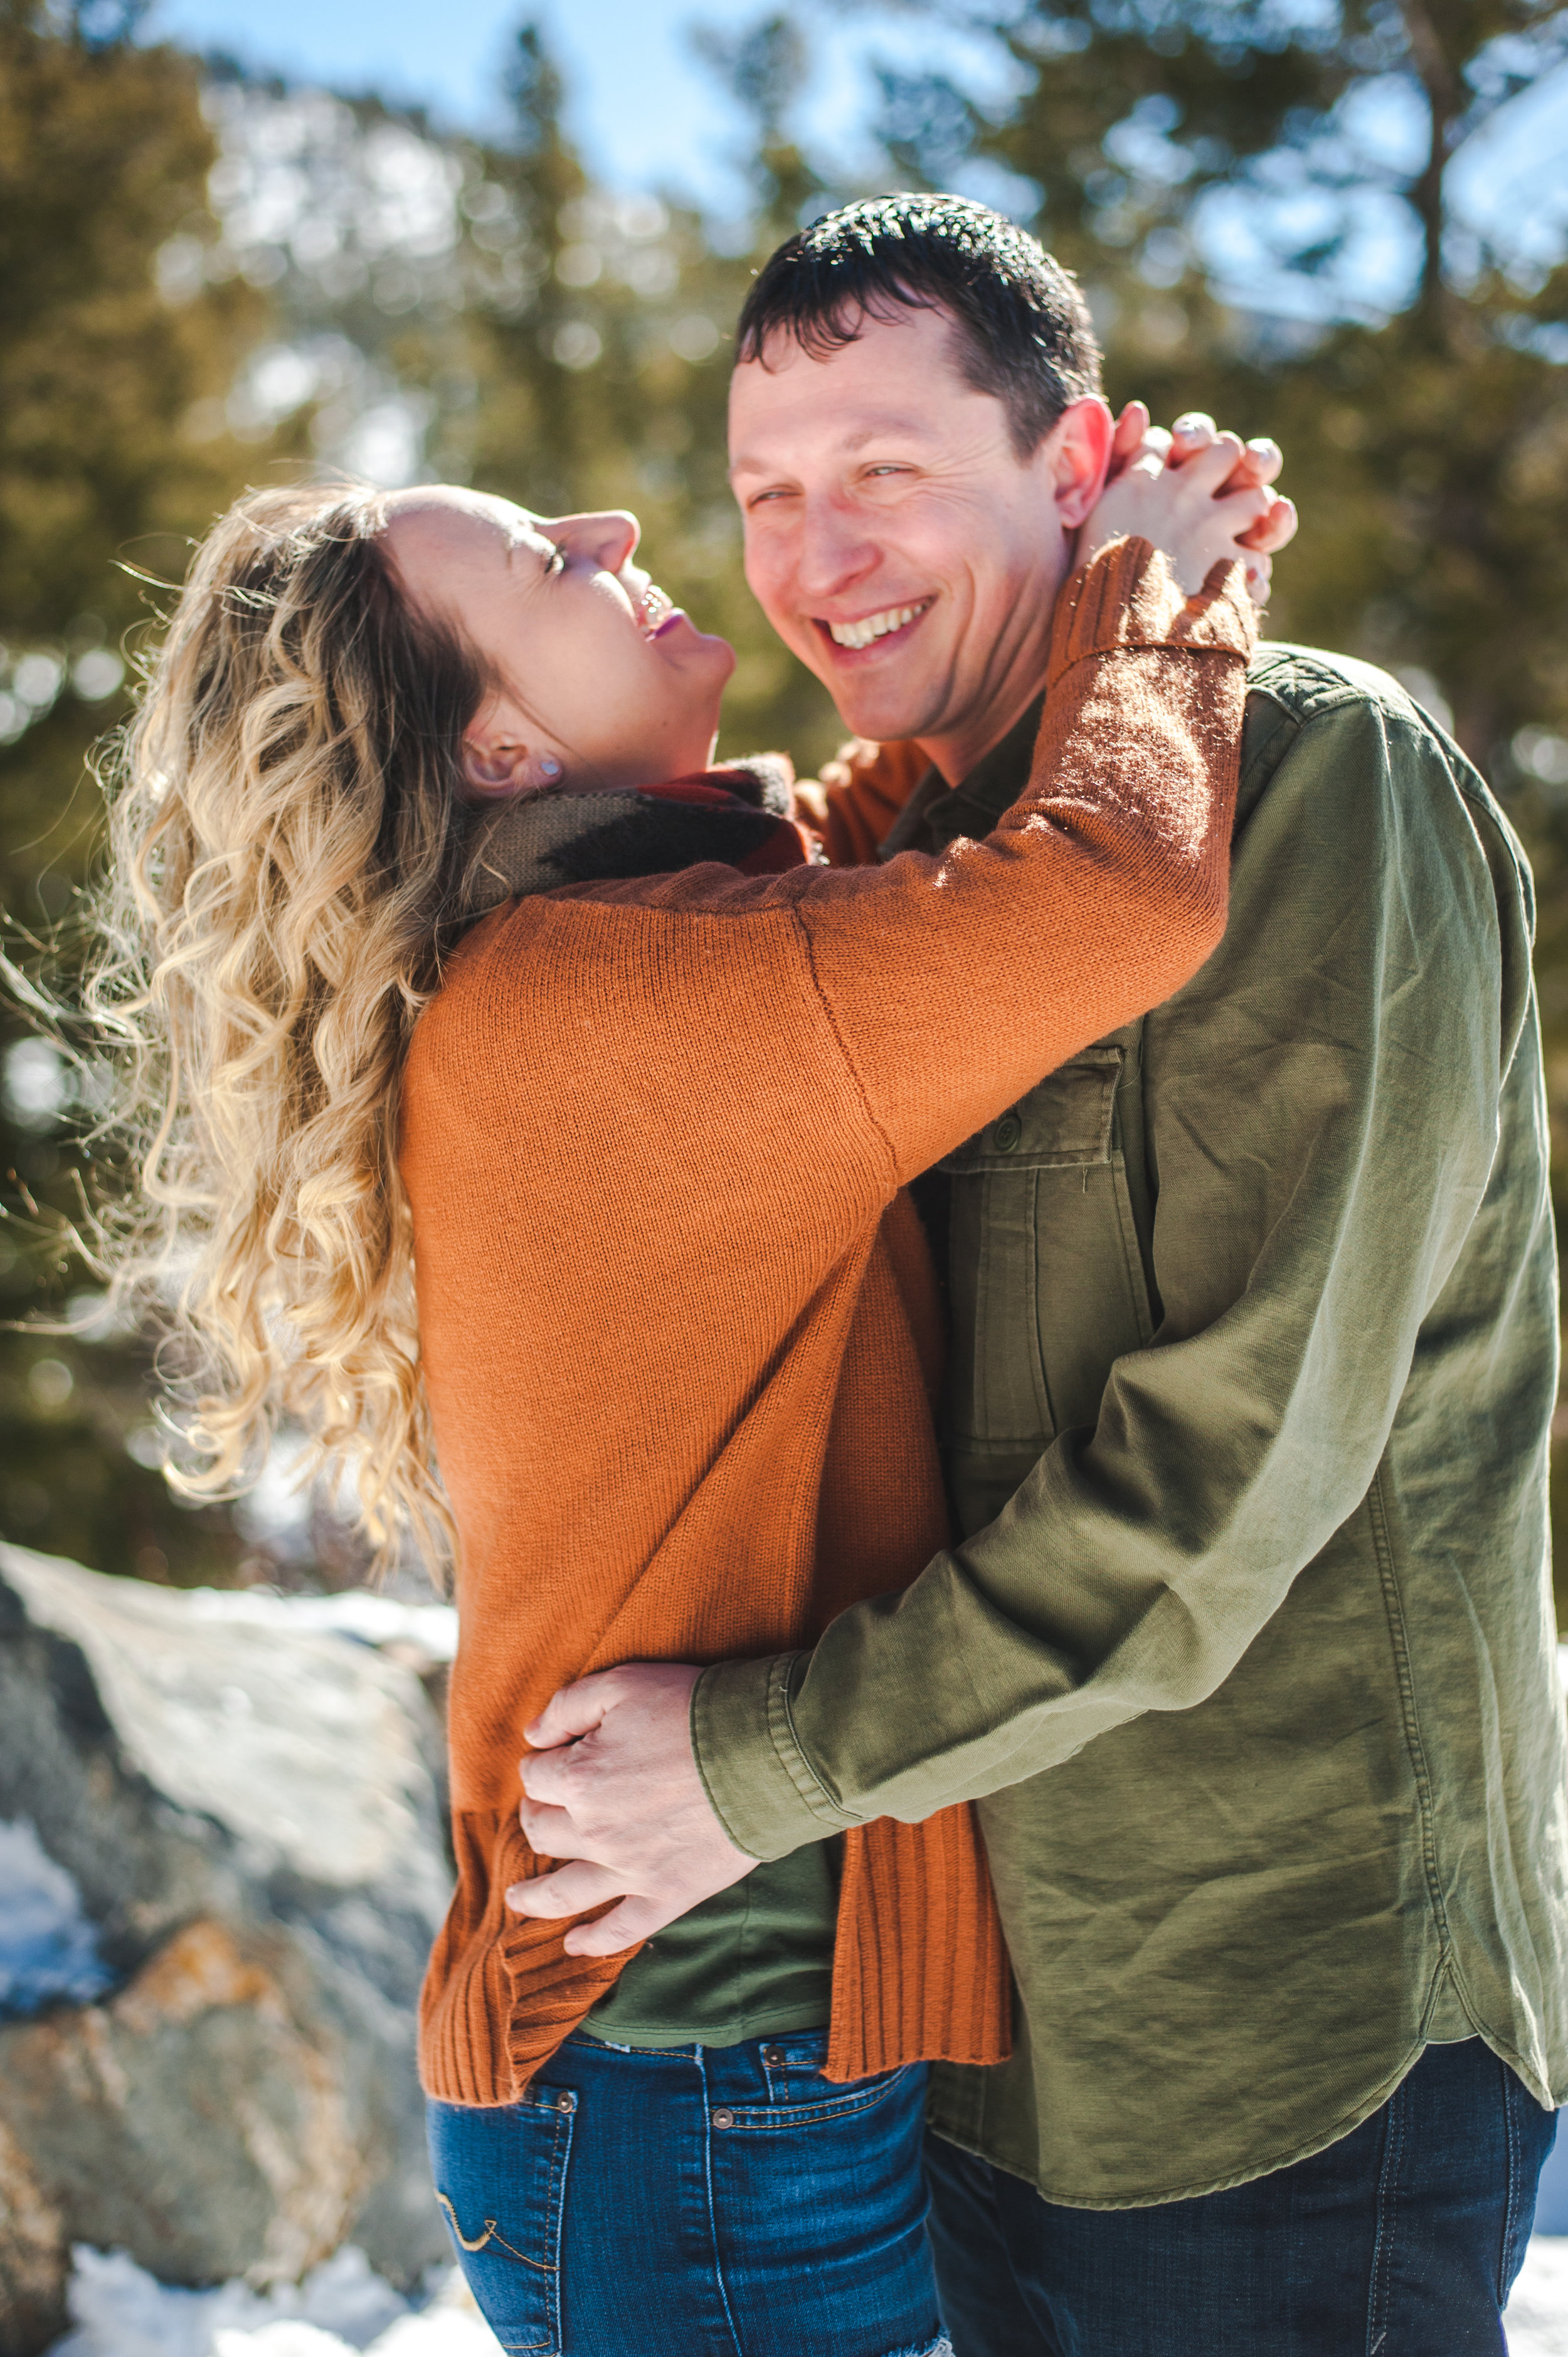 Sapphire Point engagement session sunny winter day in Colorado | Keeping Composure Photography